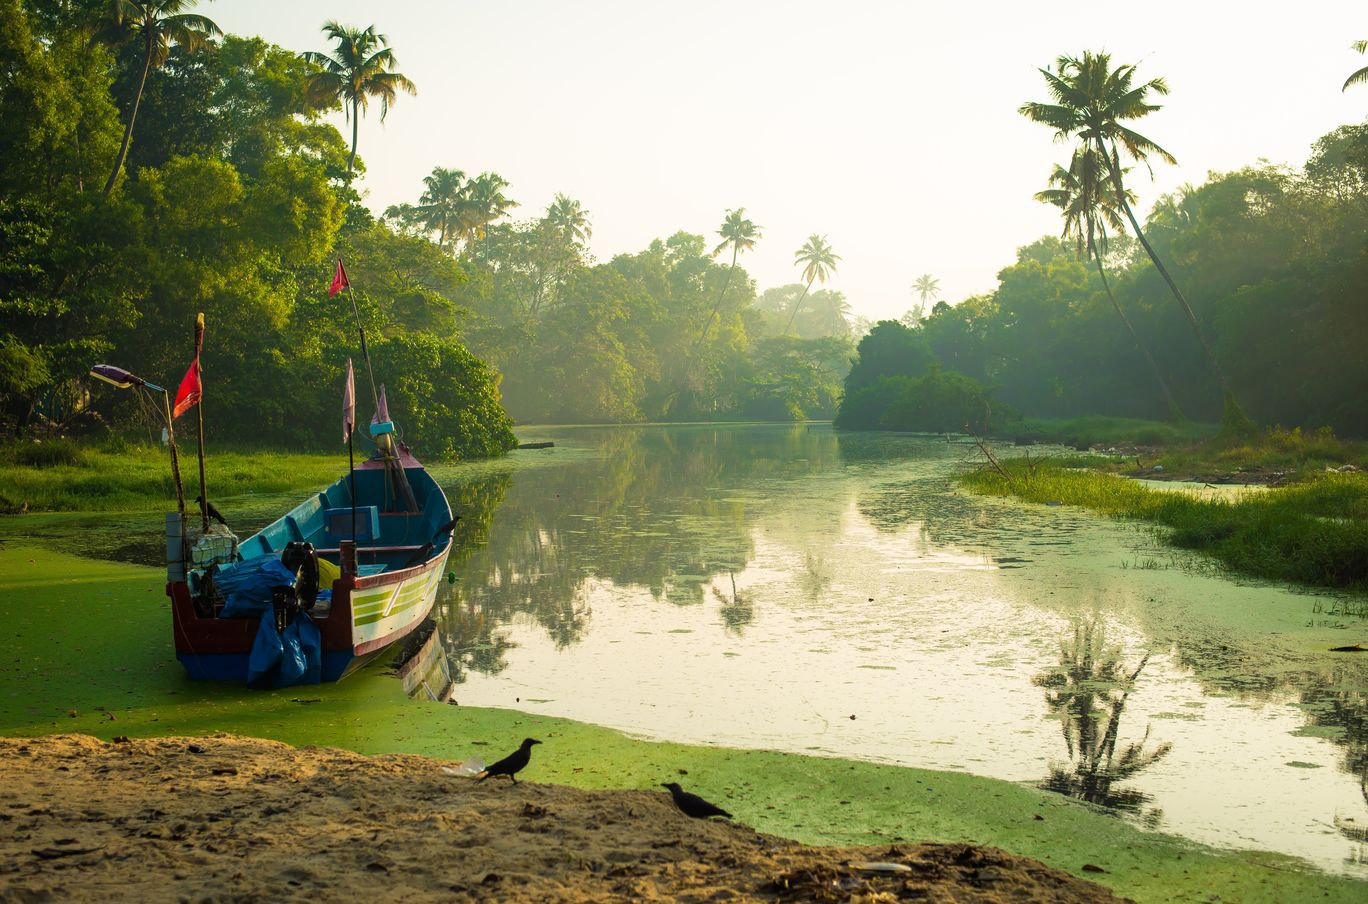 Photo of Kerala By Kumar Prashant